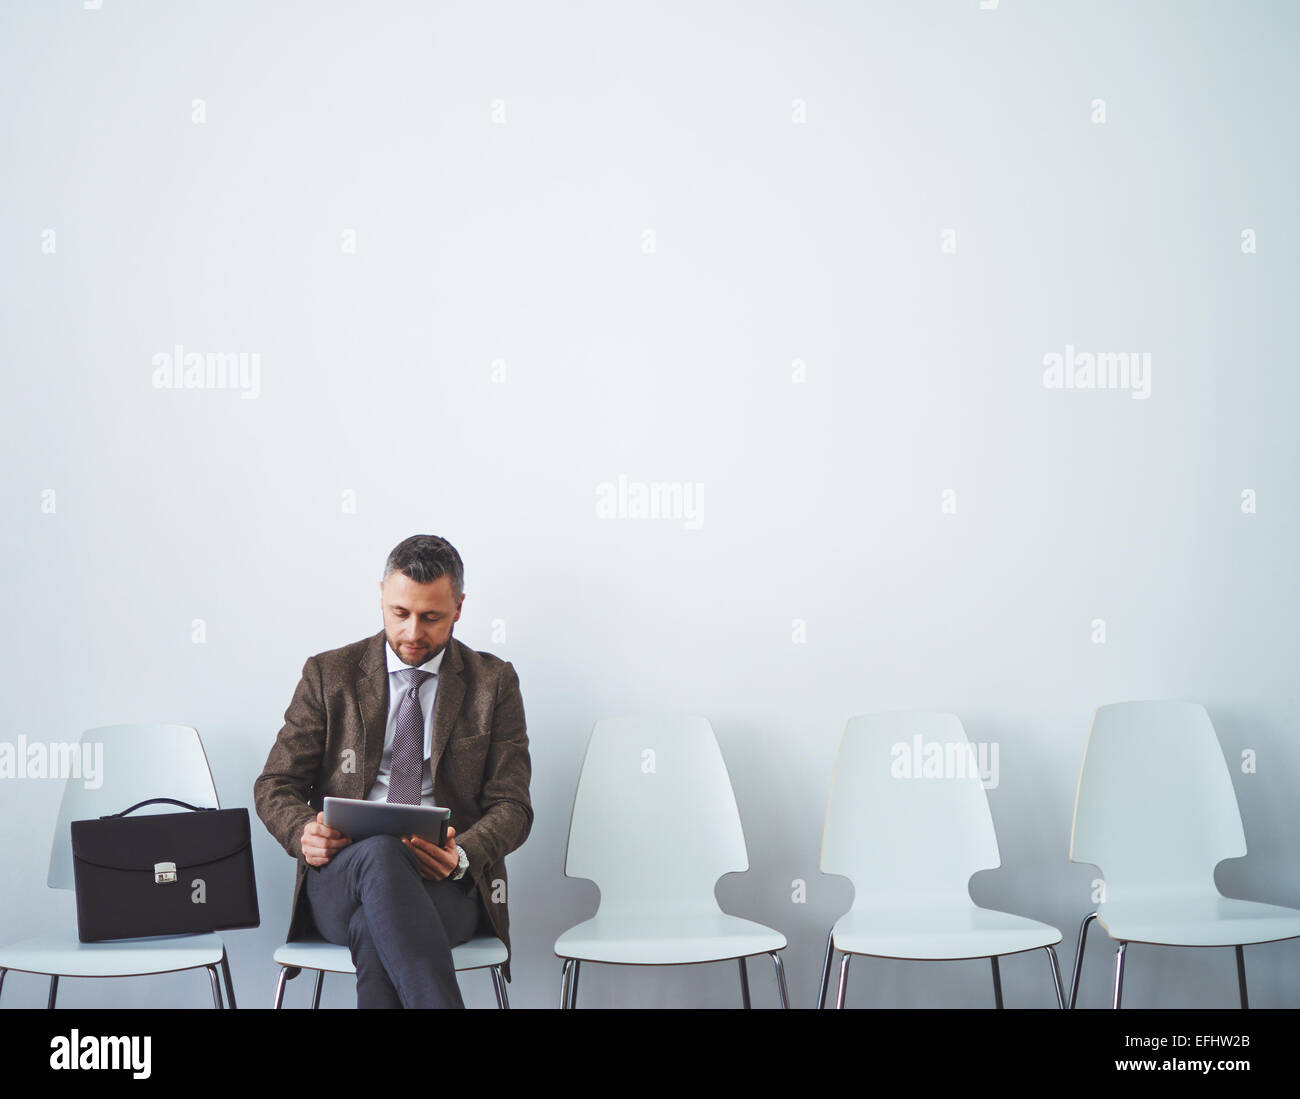 Mature man in formalwear networking before interview - Stock Image